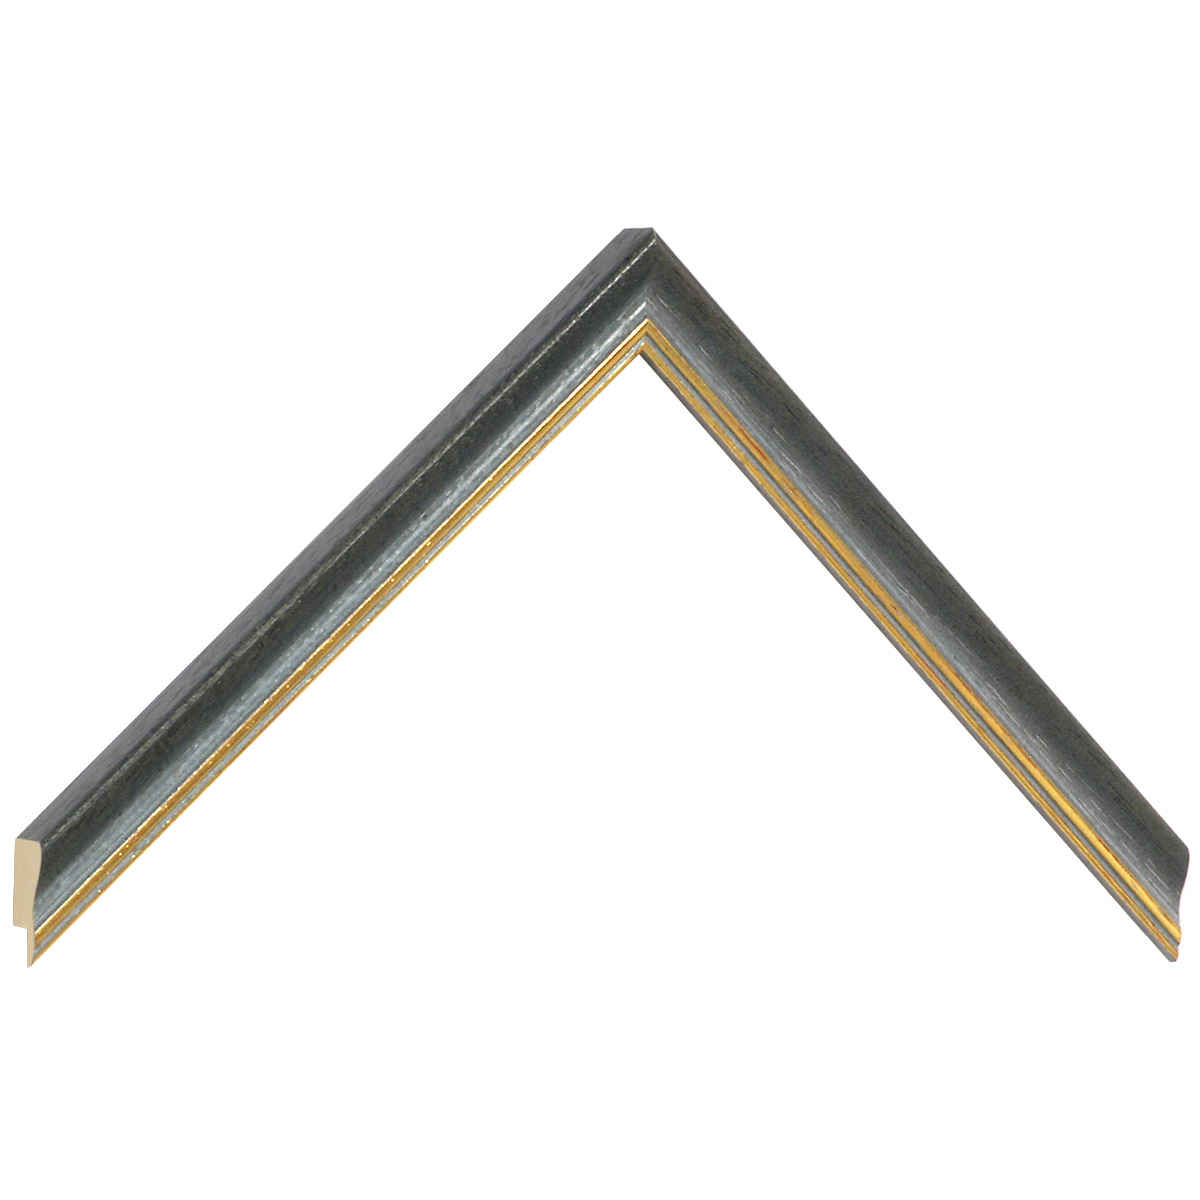 Moulding ayous width 15mm - matt gray with gold edge